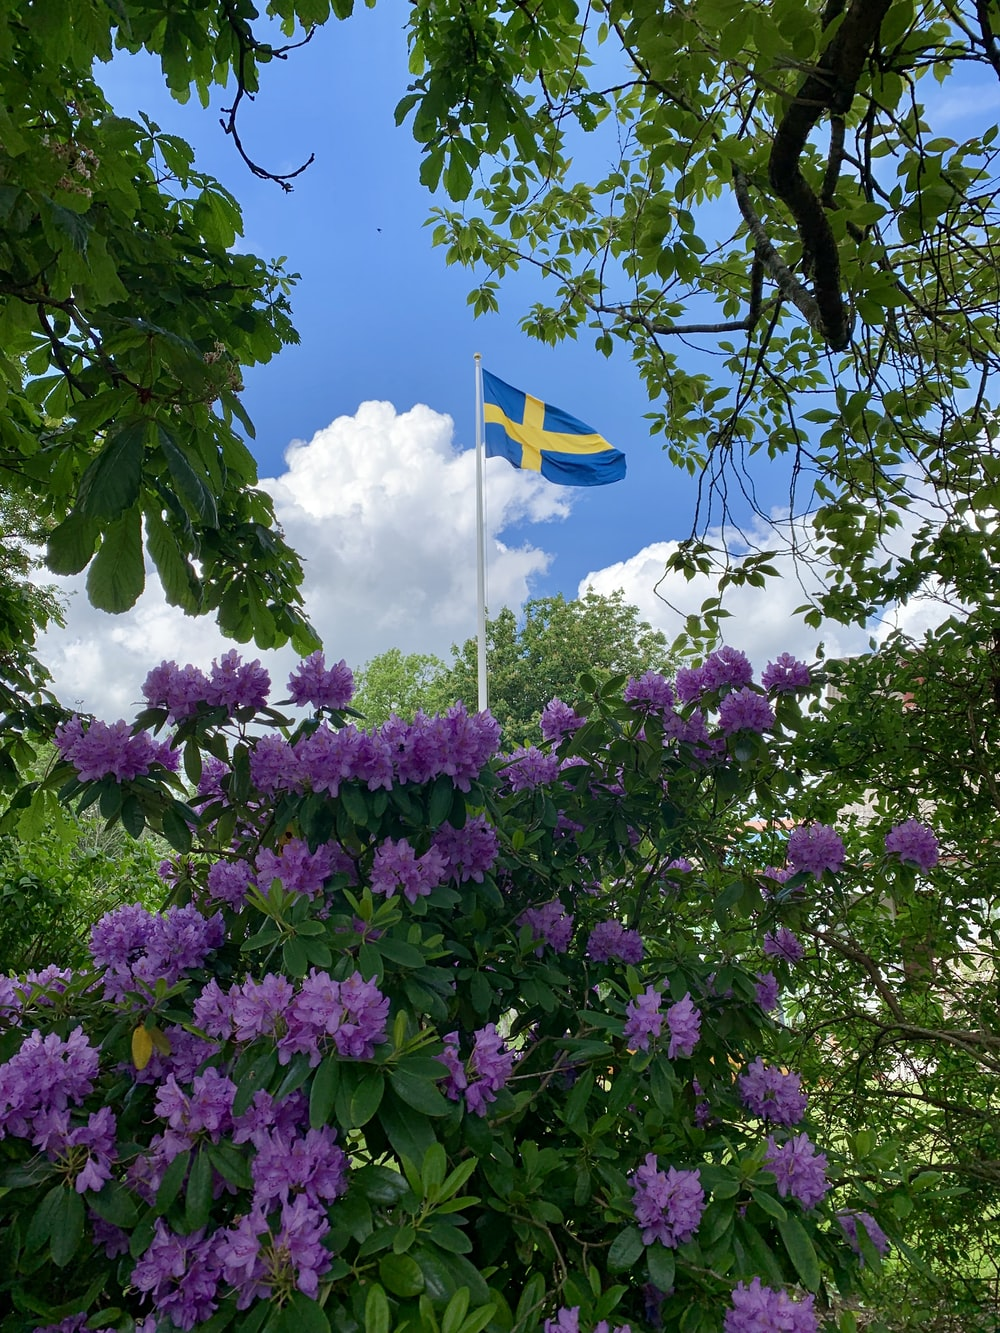 blue flag with yellow cross in the middle near purple flower bushes